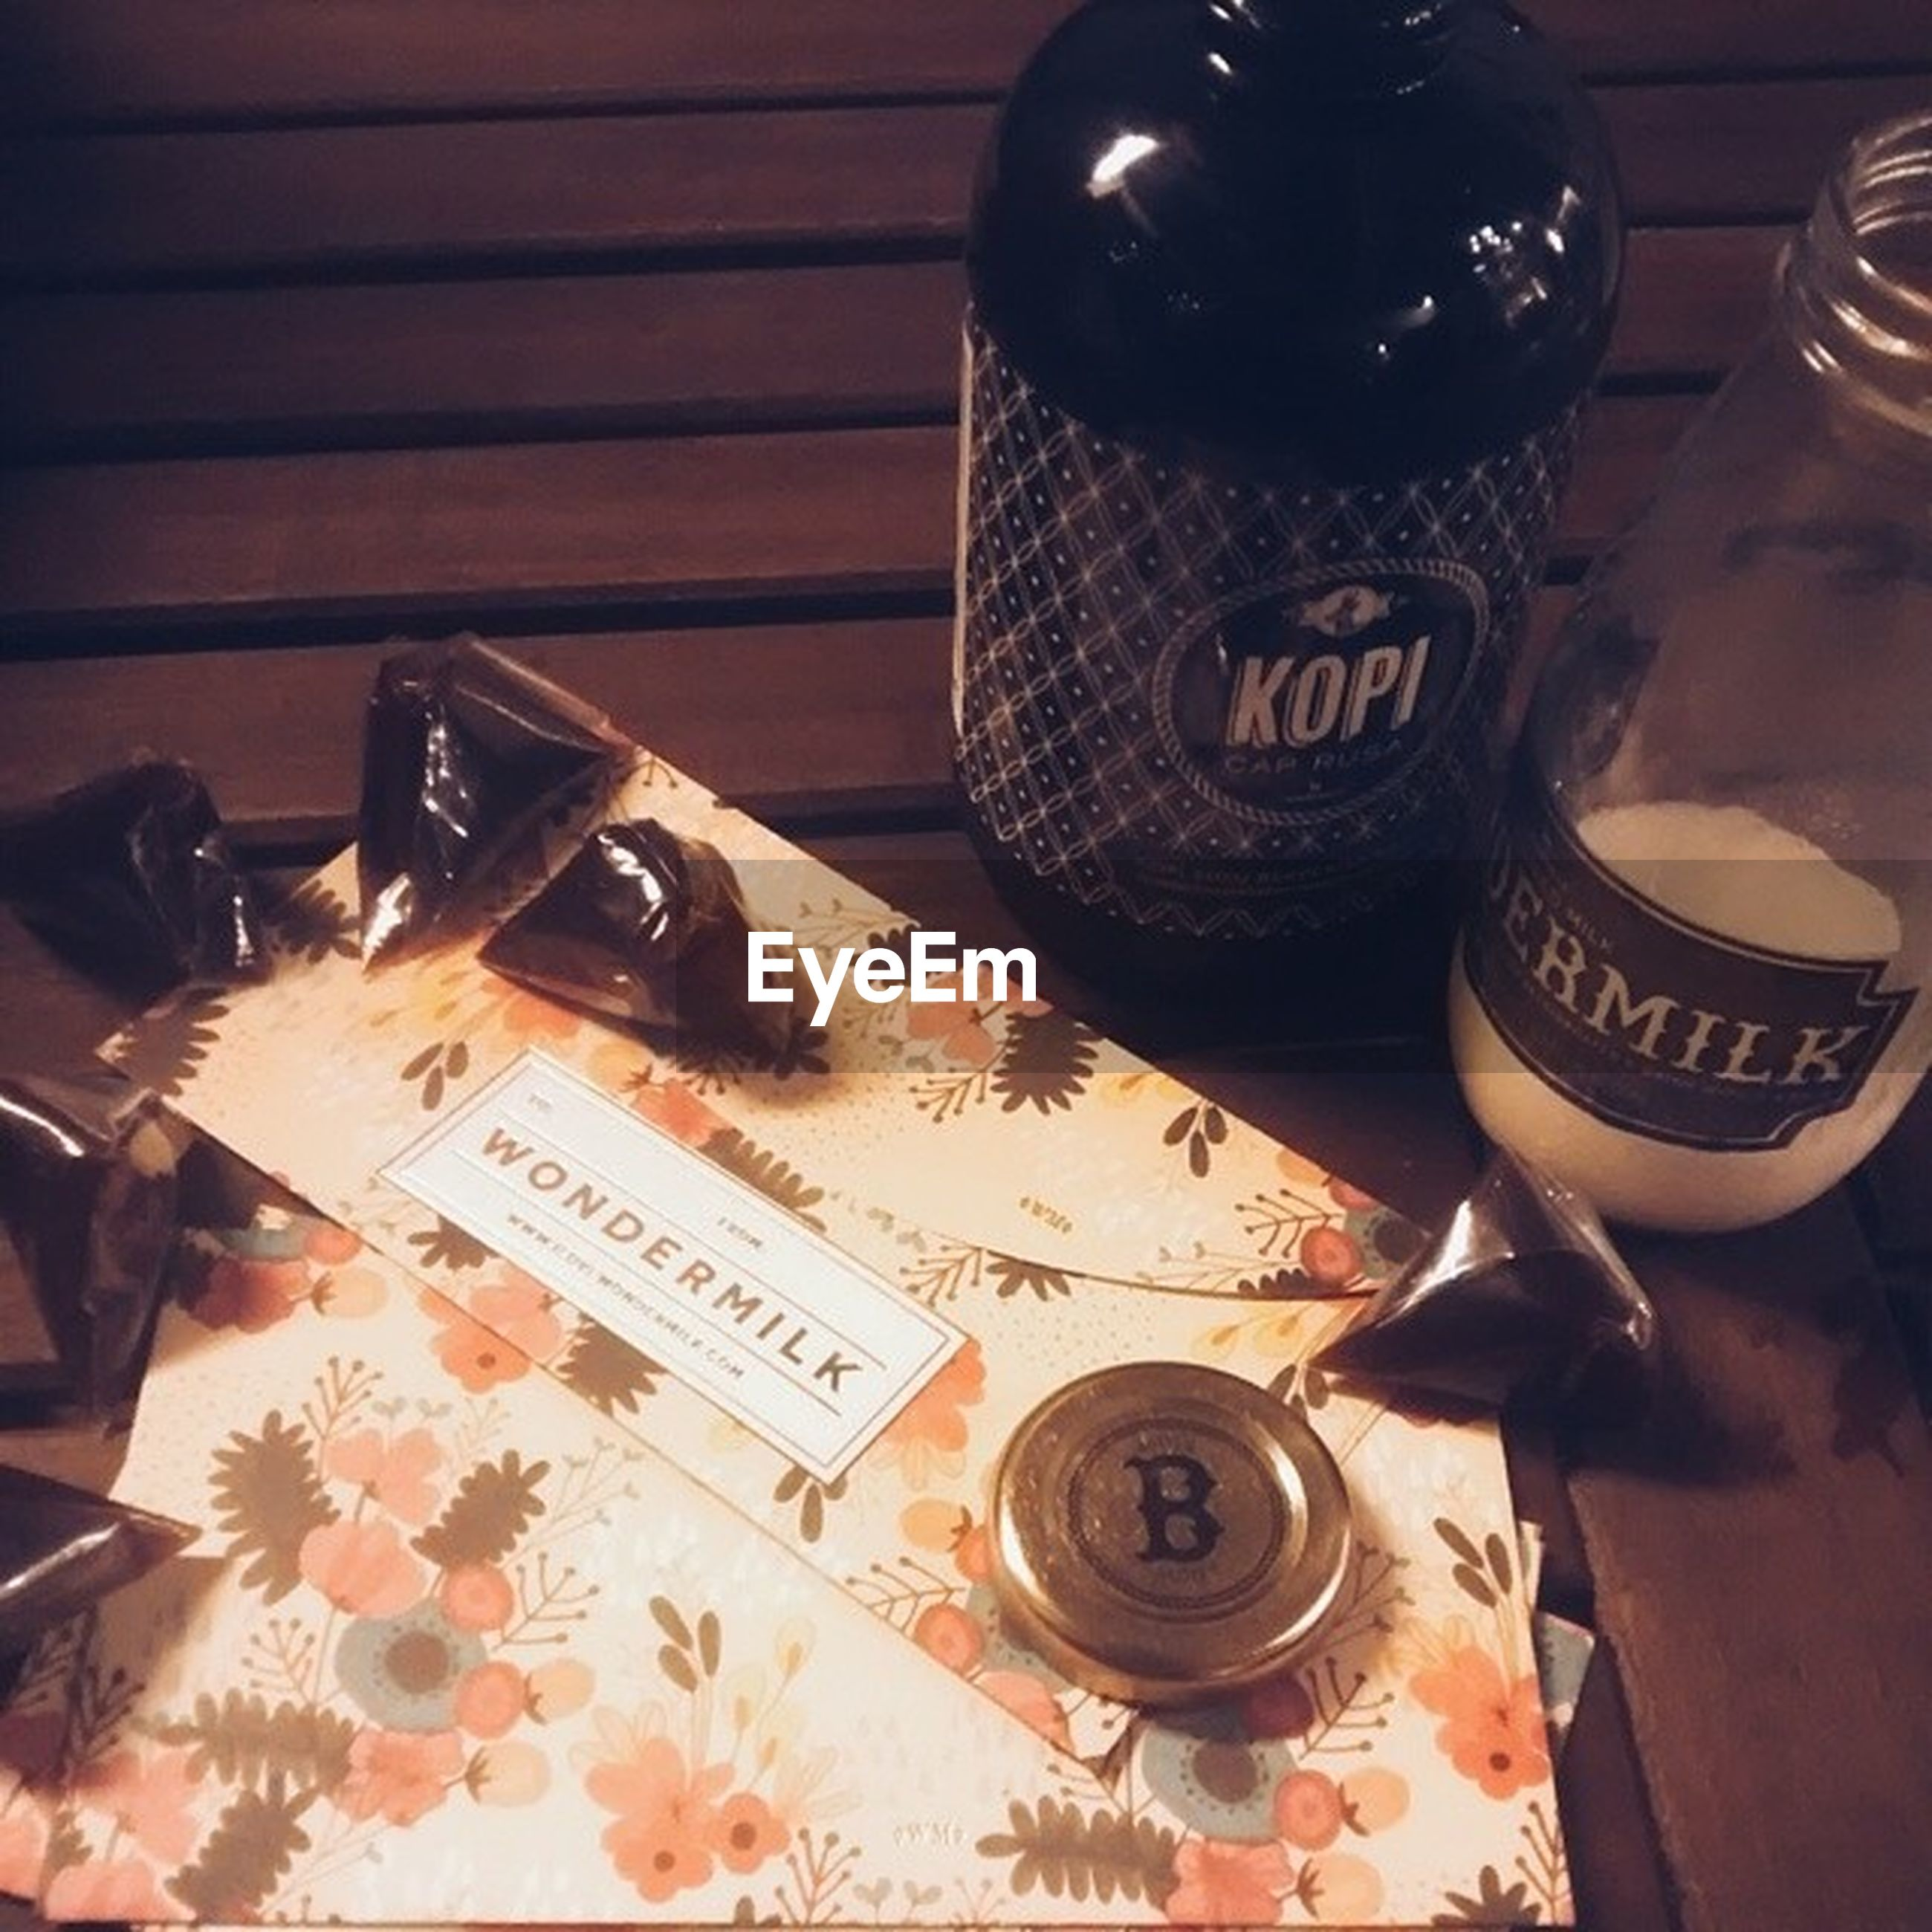 indoors, table, still life, high angle view, food and drink, communication, text, close-up, old-fashioned, drink, wood - material, technology, retro styled, antique, coffee cup, no people, home interior, western script, old, coffee - drink